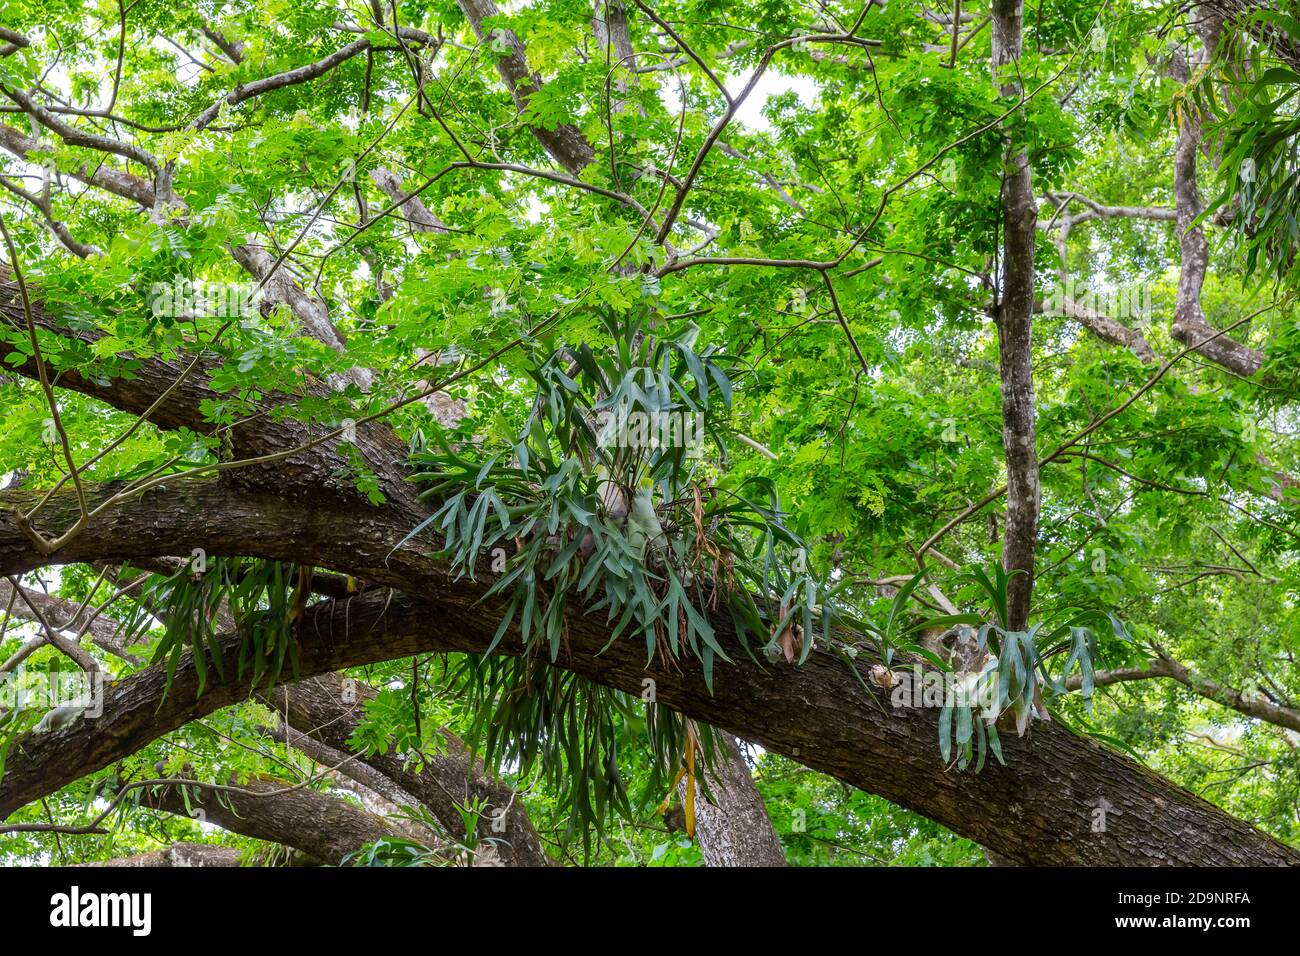 Antler ferns, (Platycerium bifurcatum), on a kapok tree, garden with palm trees and exotic plants, rum distillery Le Saint Aubin, founded in 1819, Saint Aubin, Mauritius, Africa, Indian Ocean Stock Photo